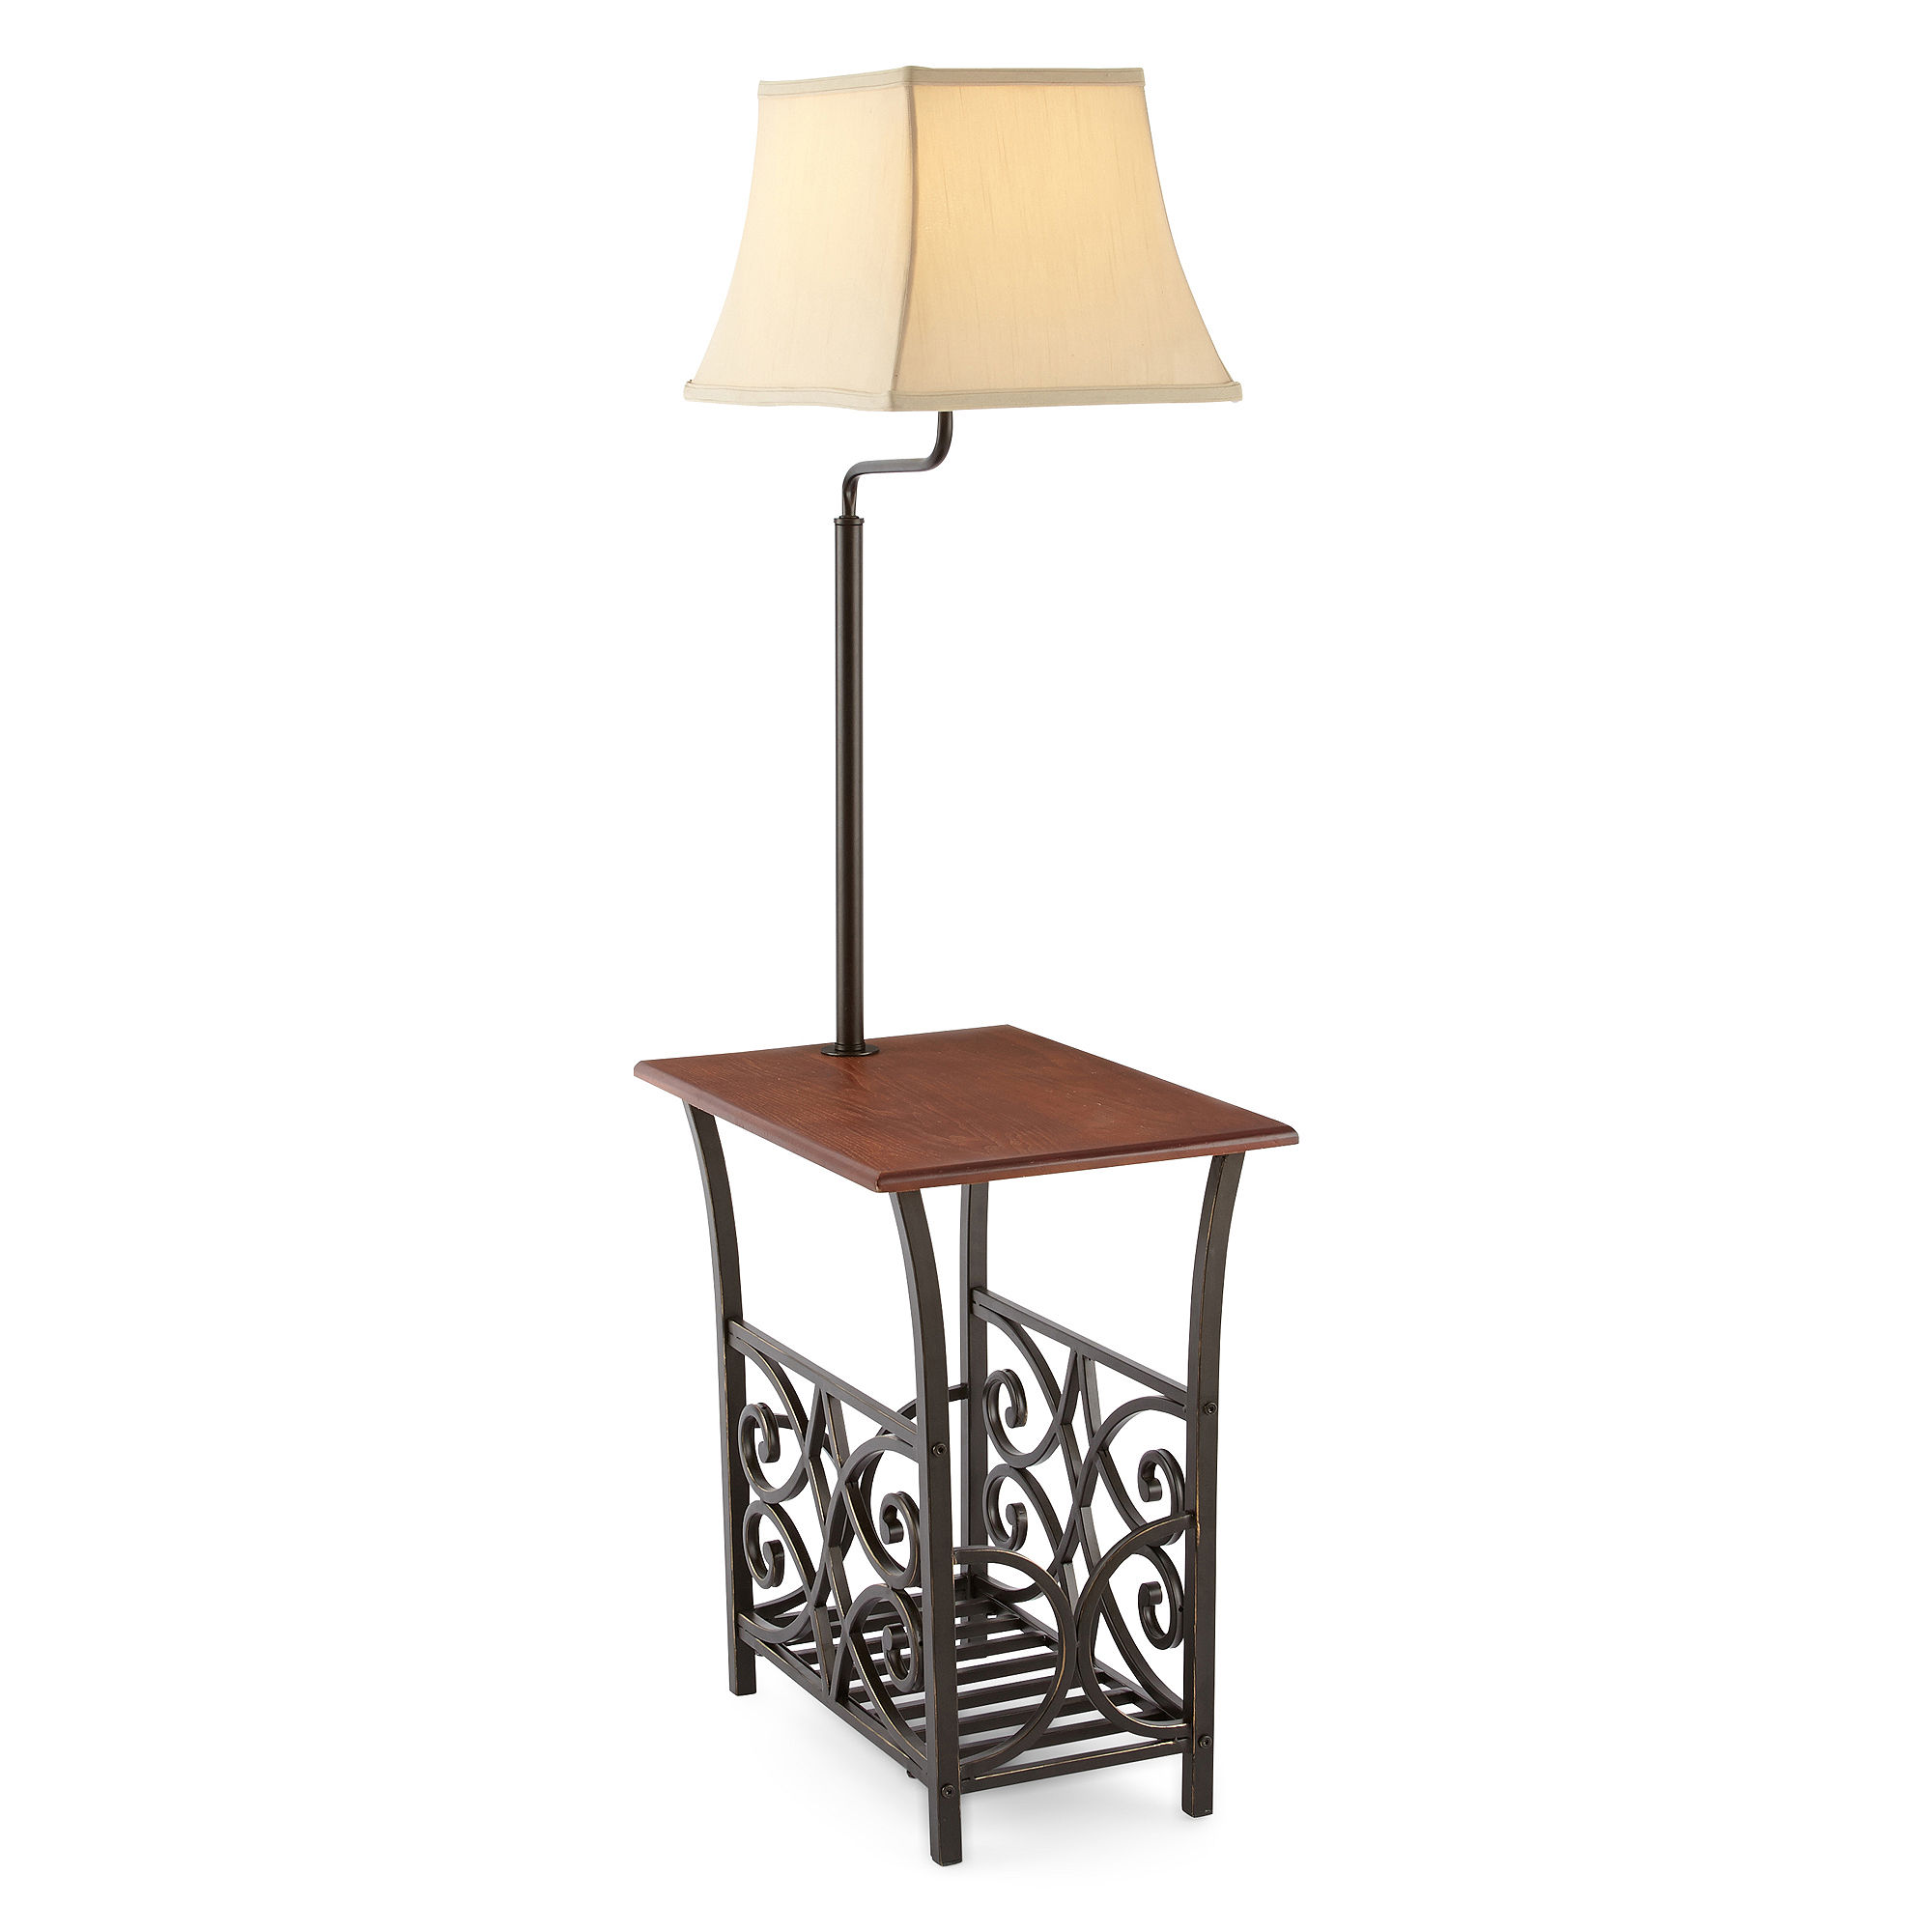 lamp preston park end tables dark oak wood veneer finish side table with attached and magazine rack combo top warisan lighting stand small corner old accent furniture holder lamps